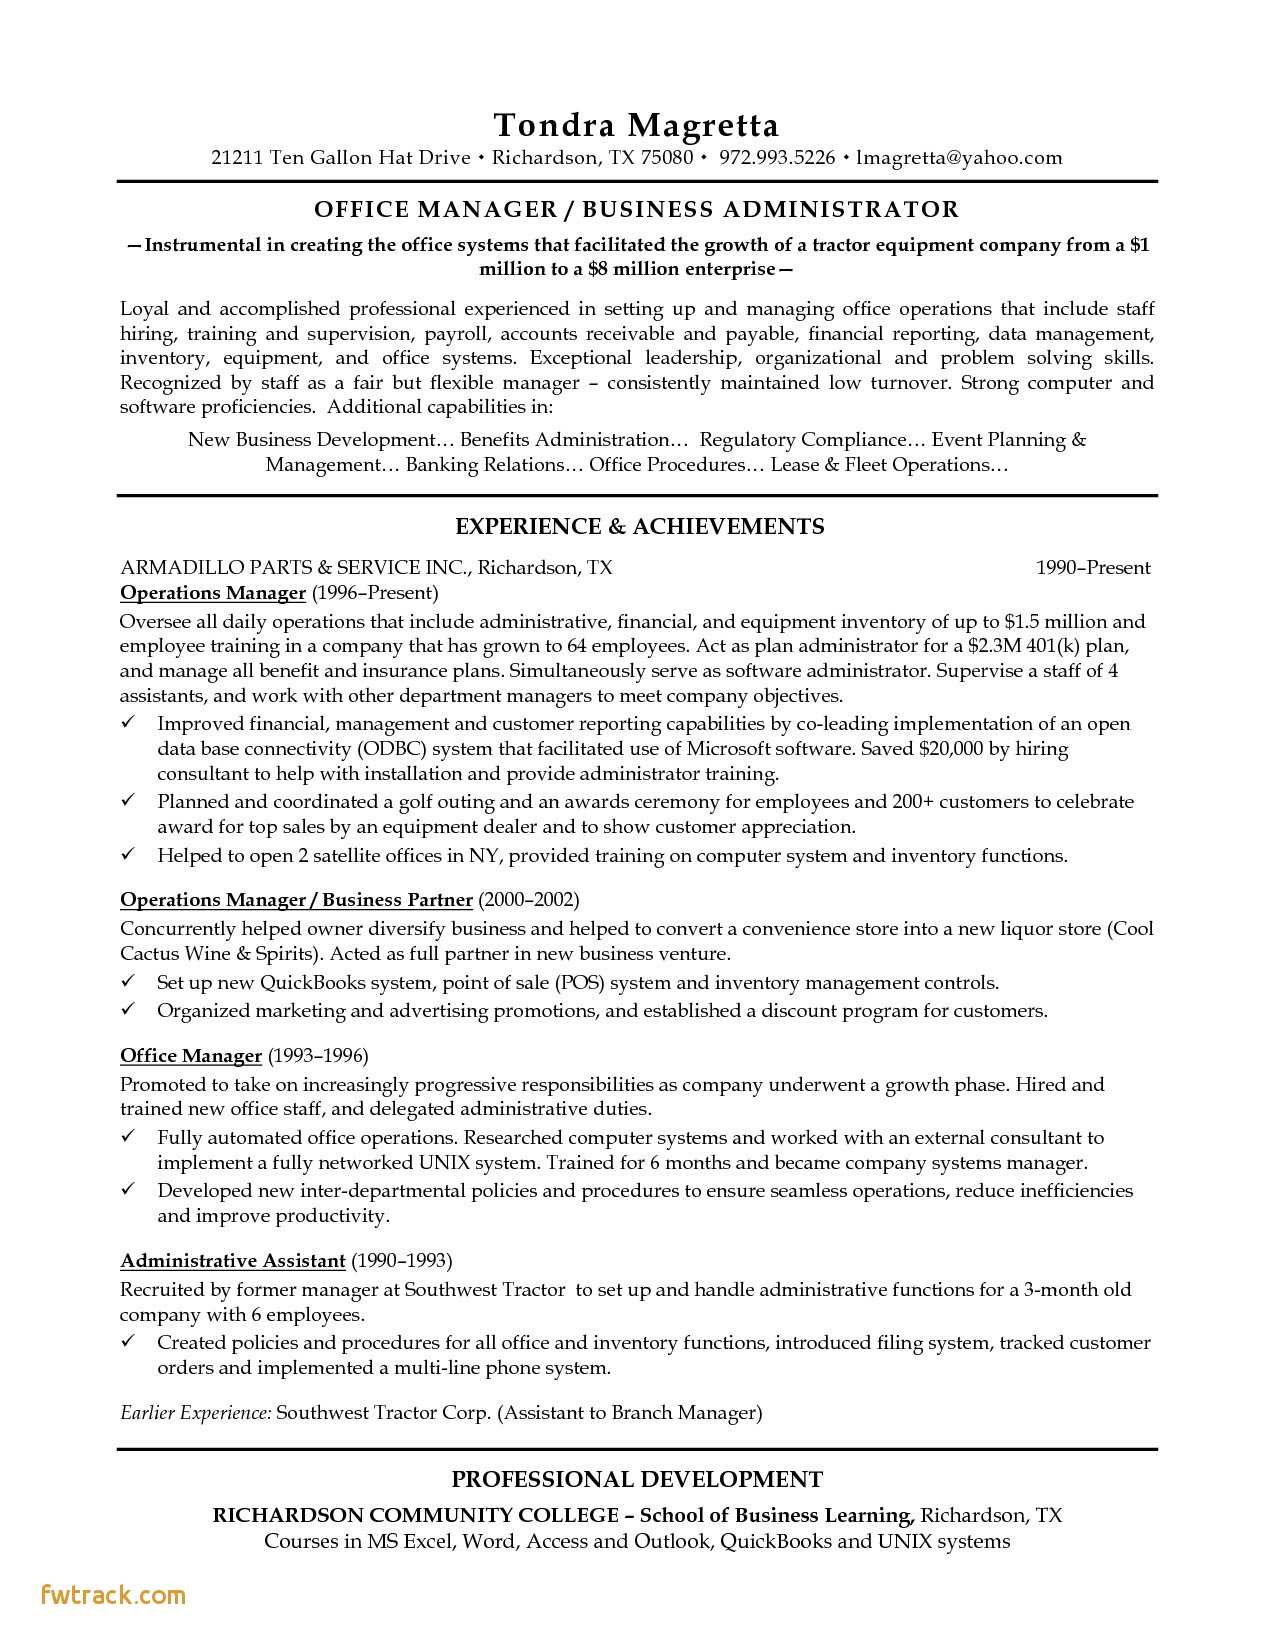 Office Manager Resume - Resume Examples for Retail Fwtrack Fwtrack